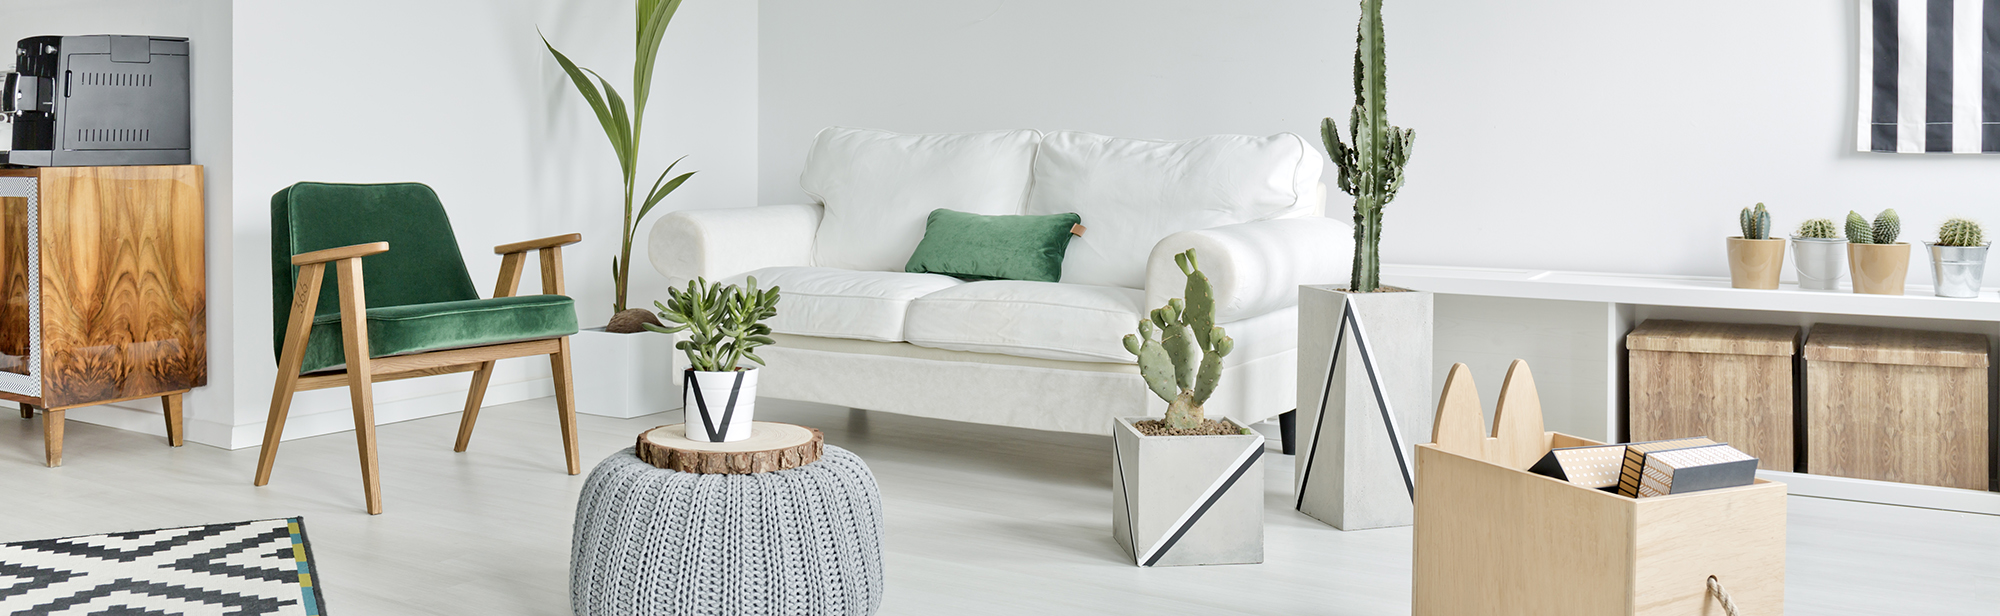 living room with plants PKL8S67